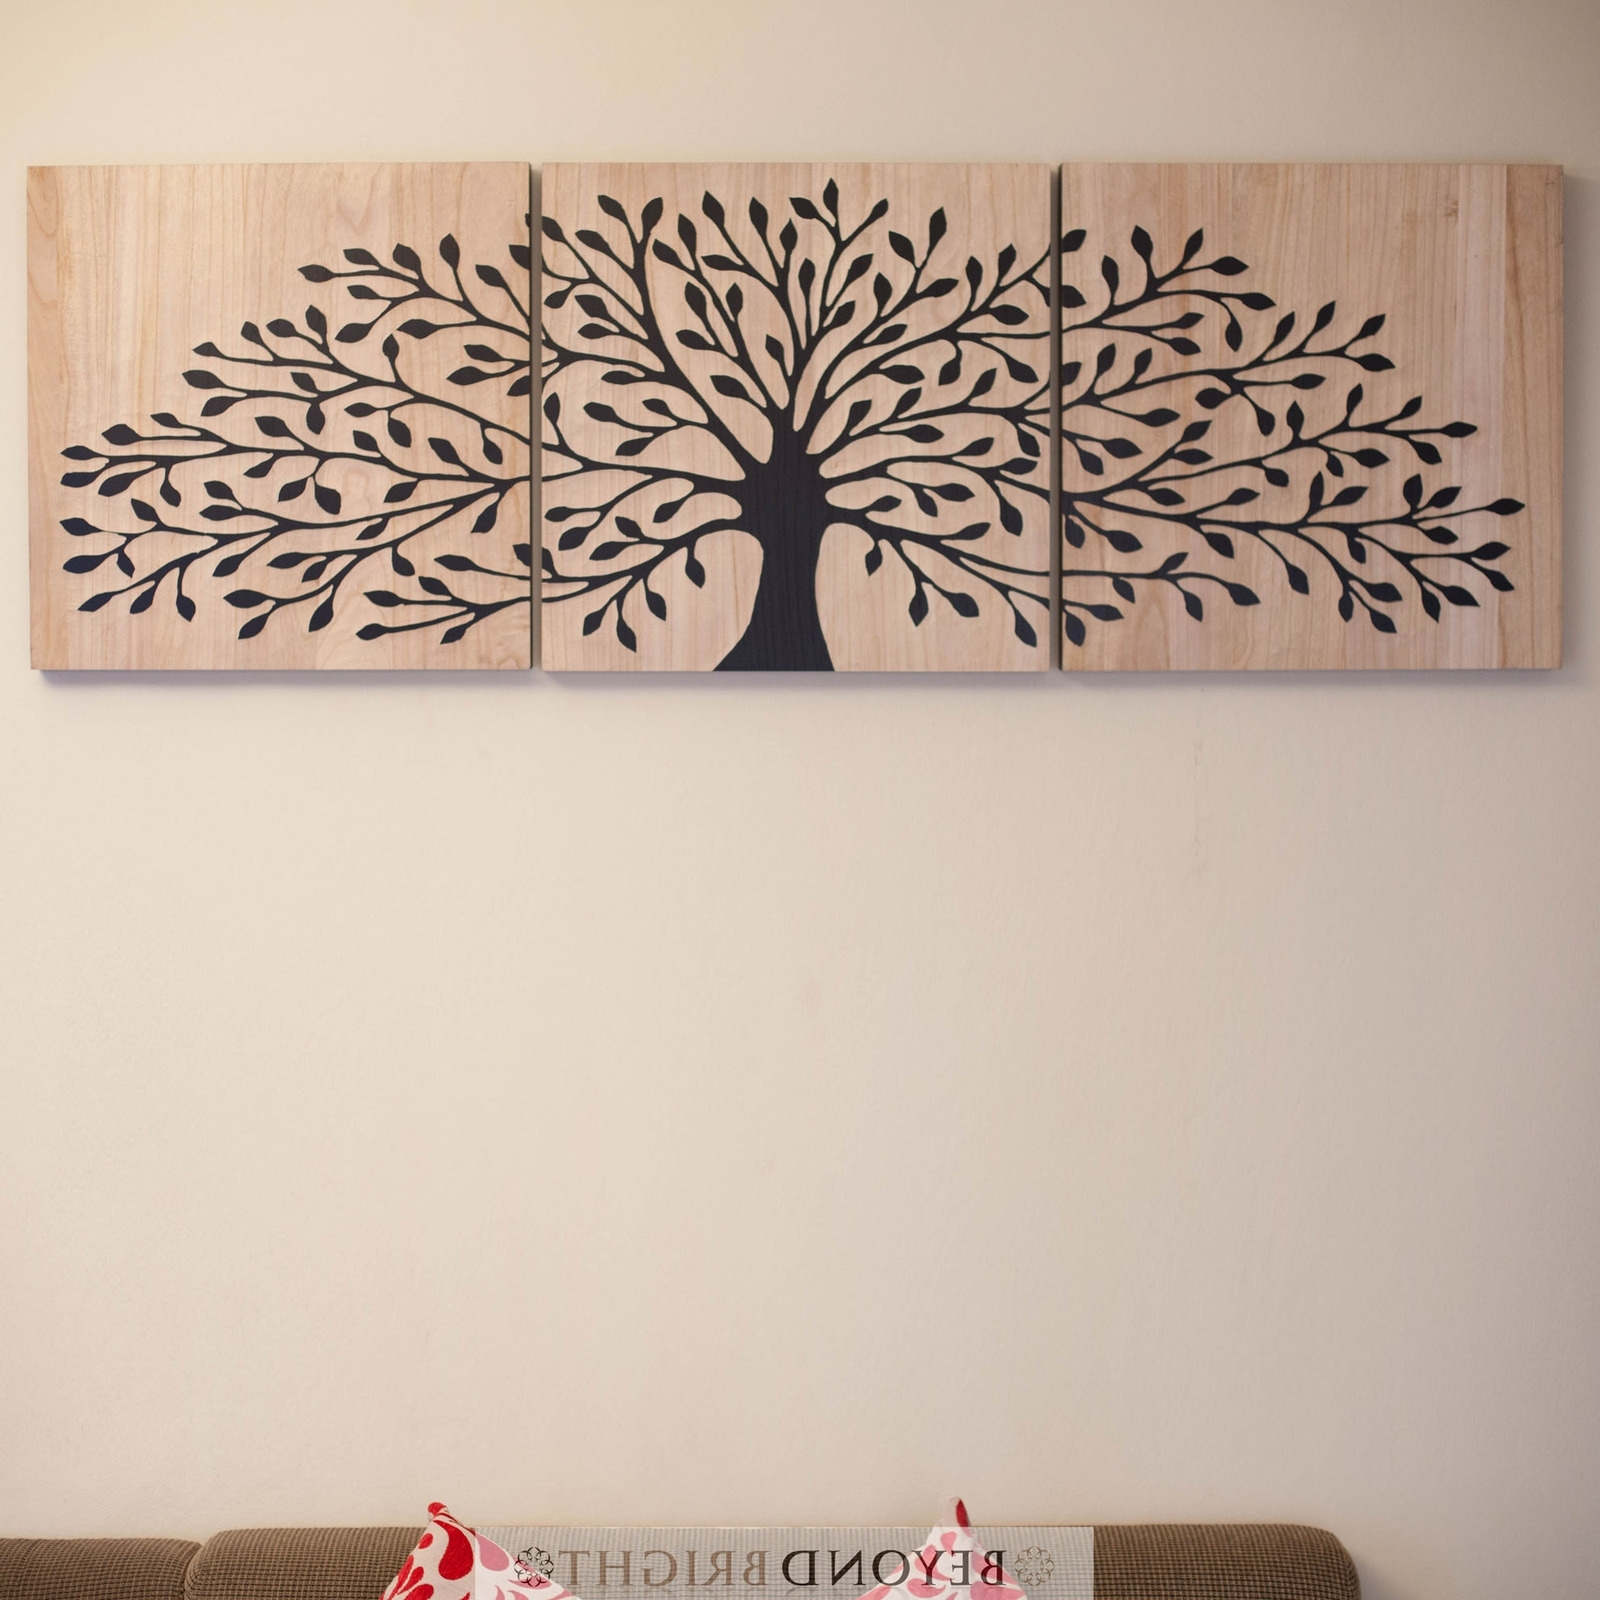 Tree Of Life Wooden Timber Carved Wall Art Blck Mangowood Carving Throughout Most Recently Released Tree Of Life Wall Art (Gallery 11 of 15)